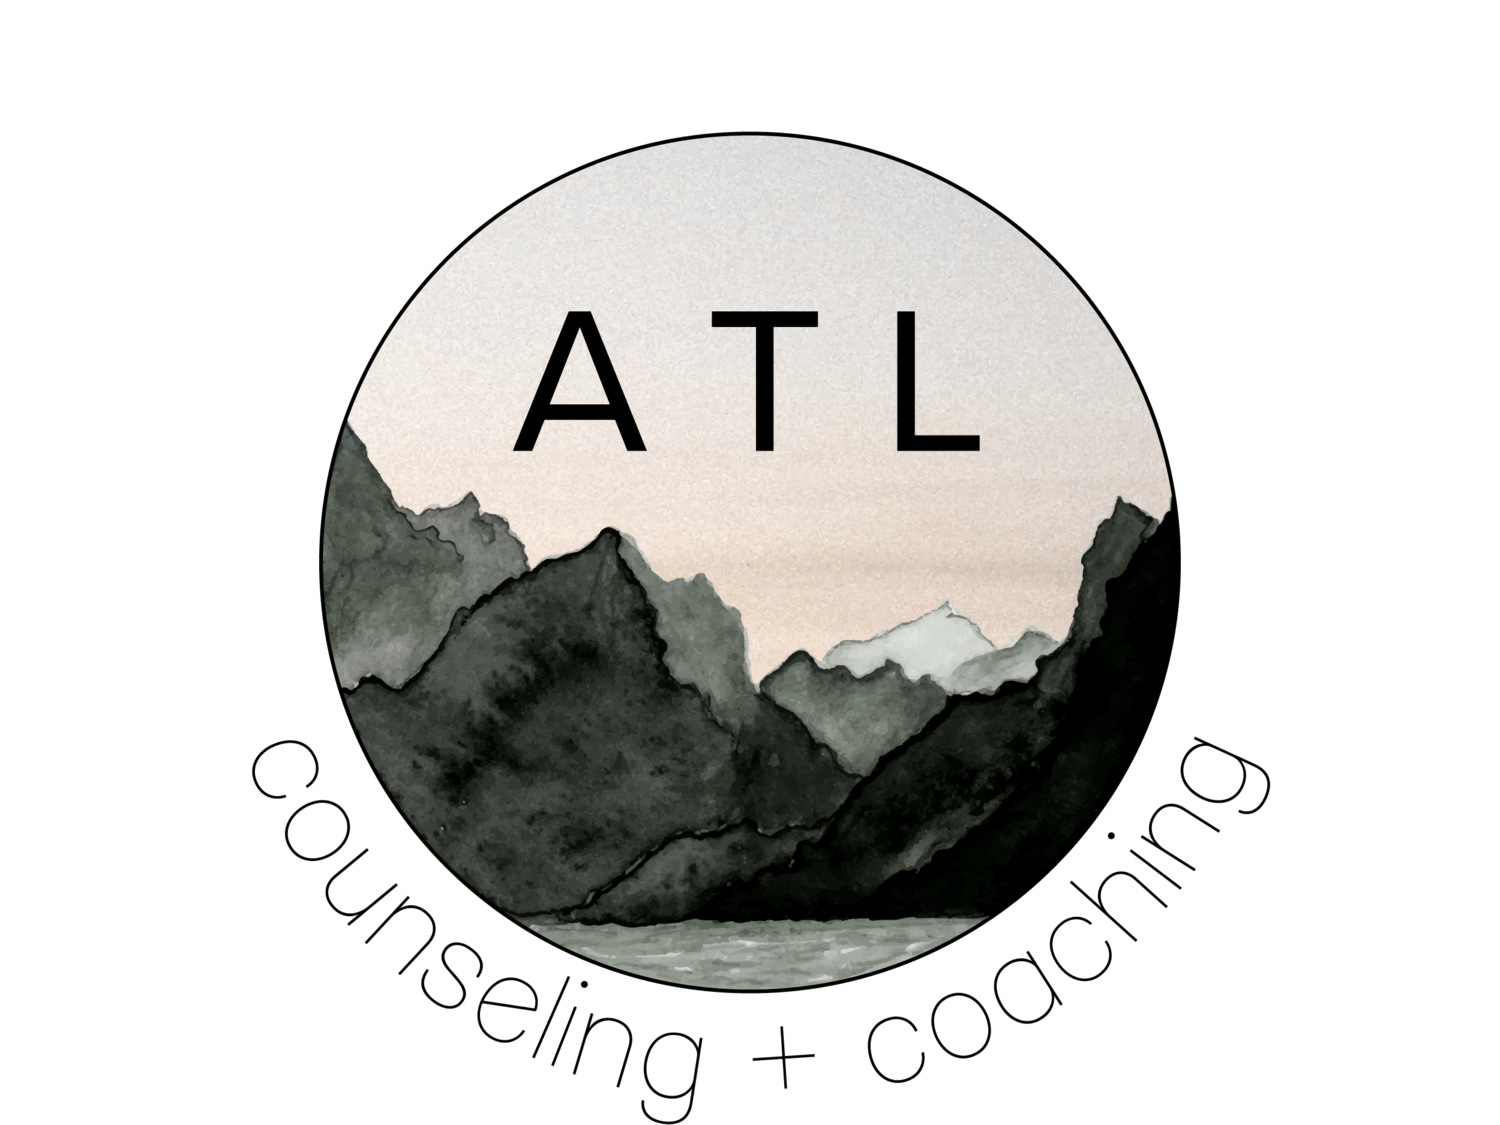 ATL Counseling + Coaching